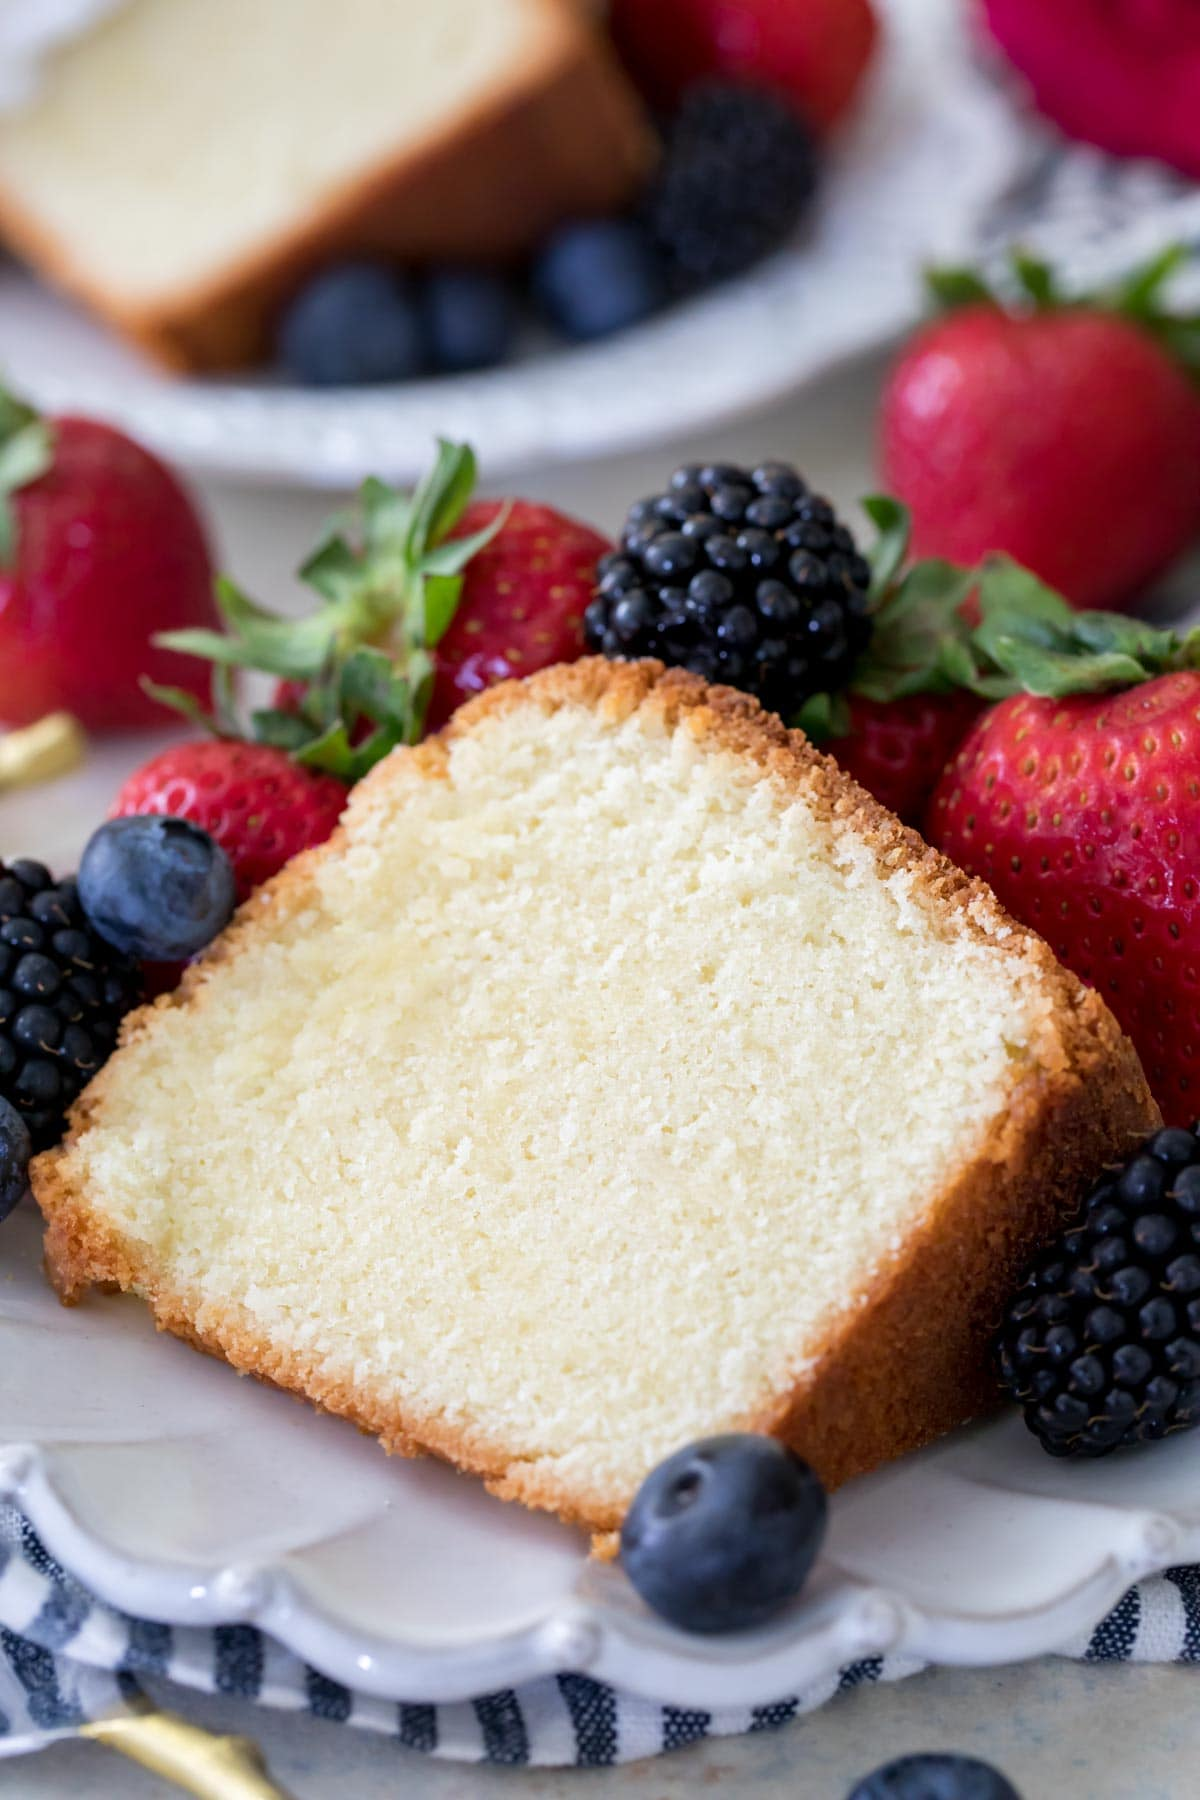 Thick slice of pound cake surrounded by fresh berries on white plate